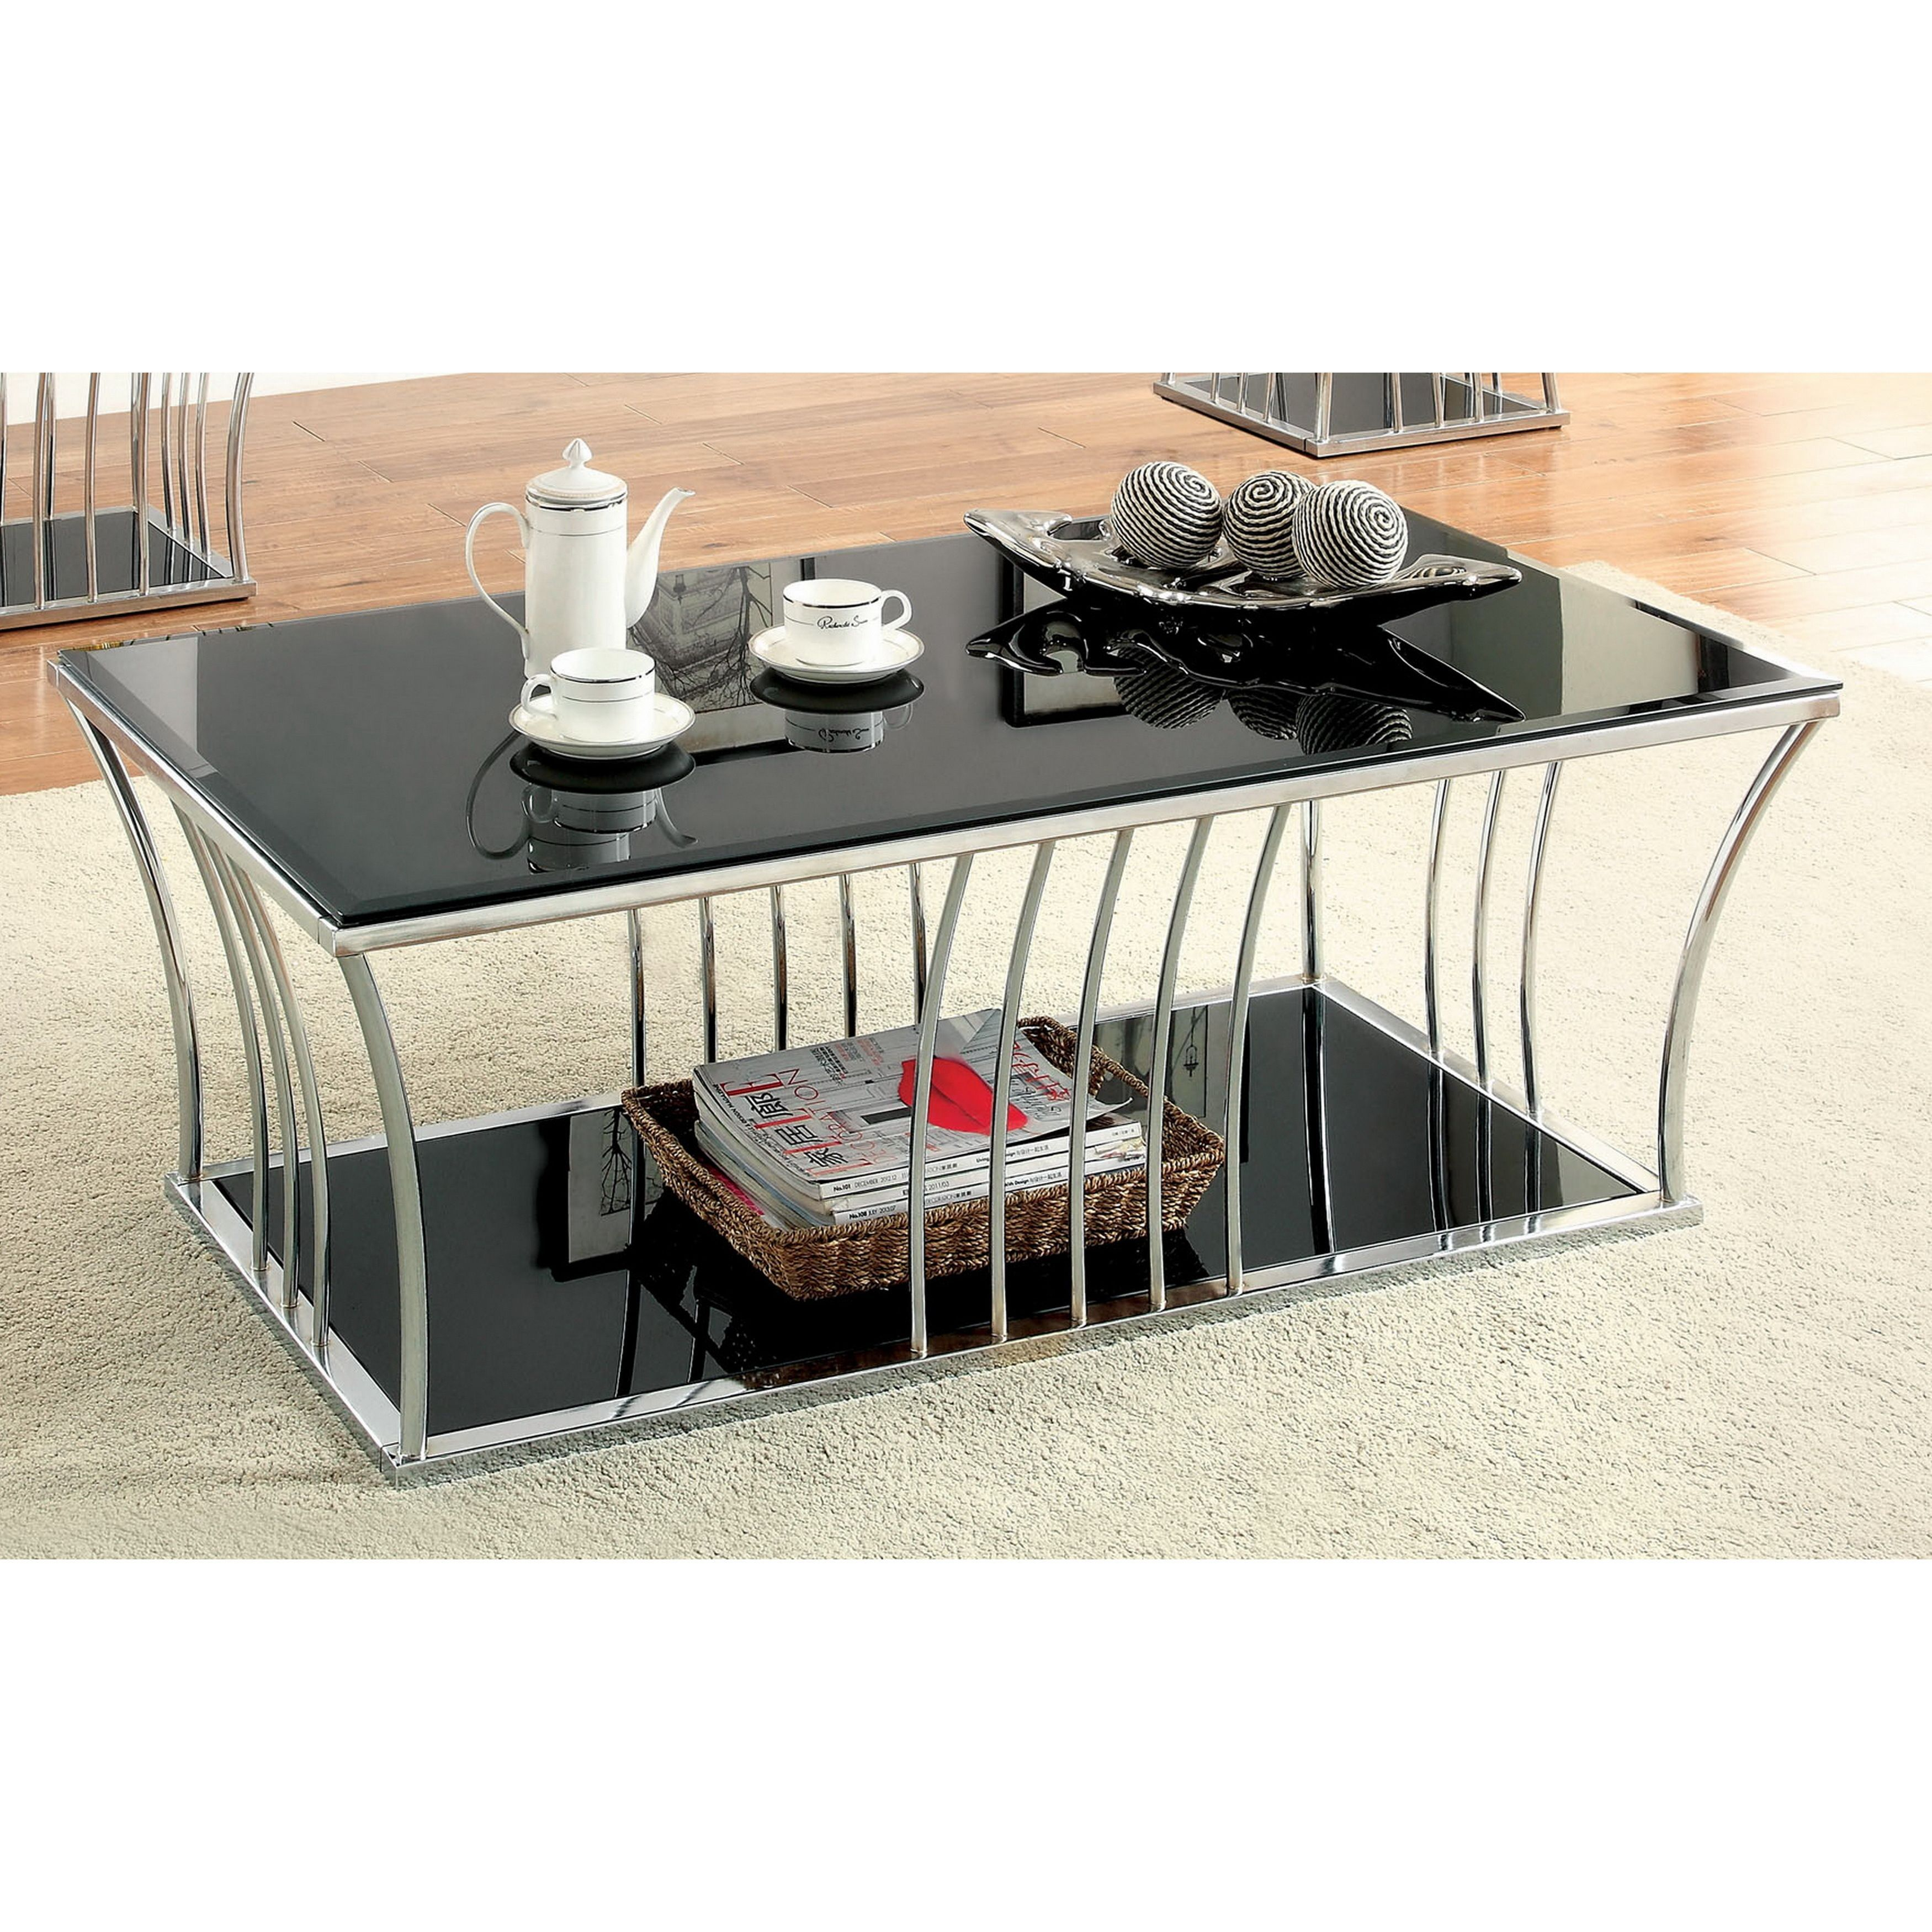 Furniture of America Confidante Curved Chrome Coffee Table Black